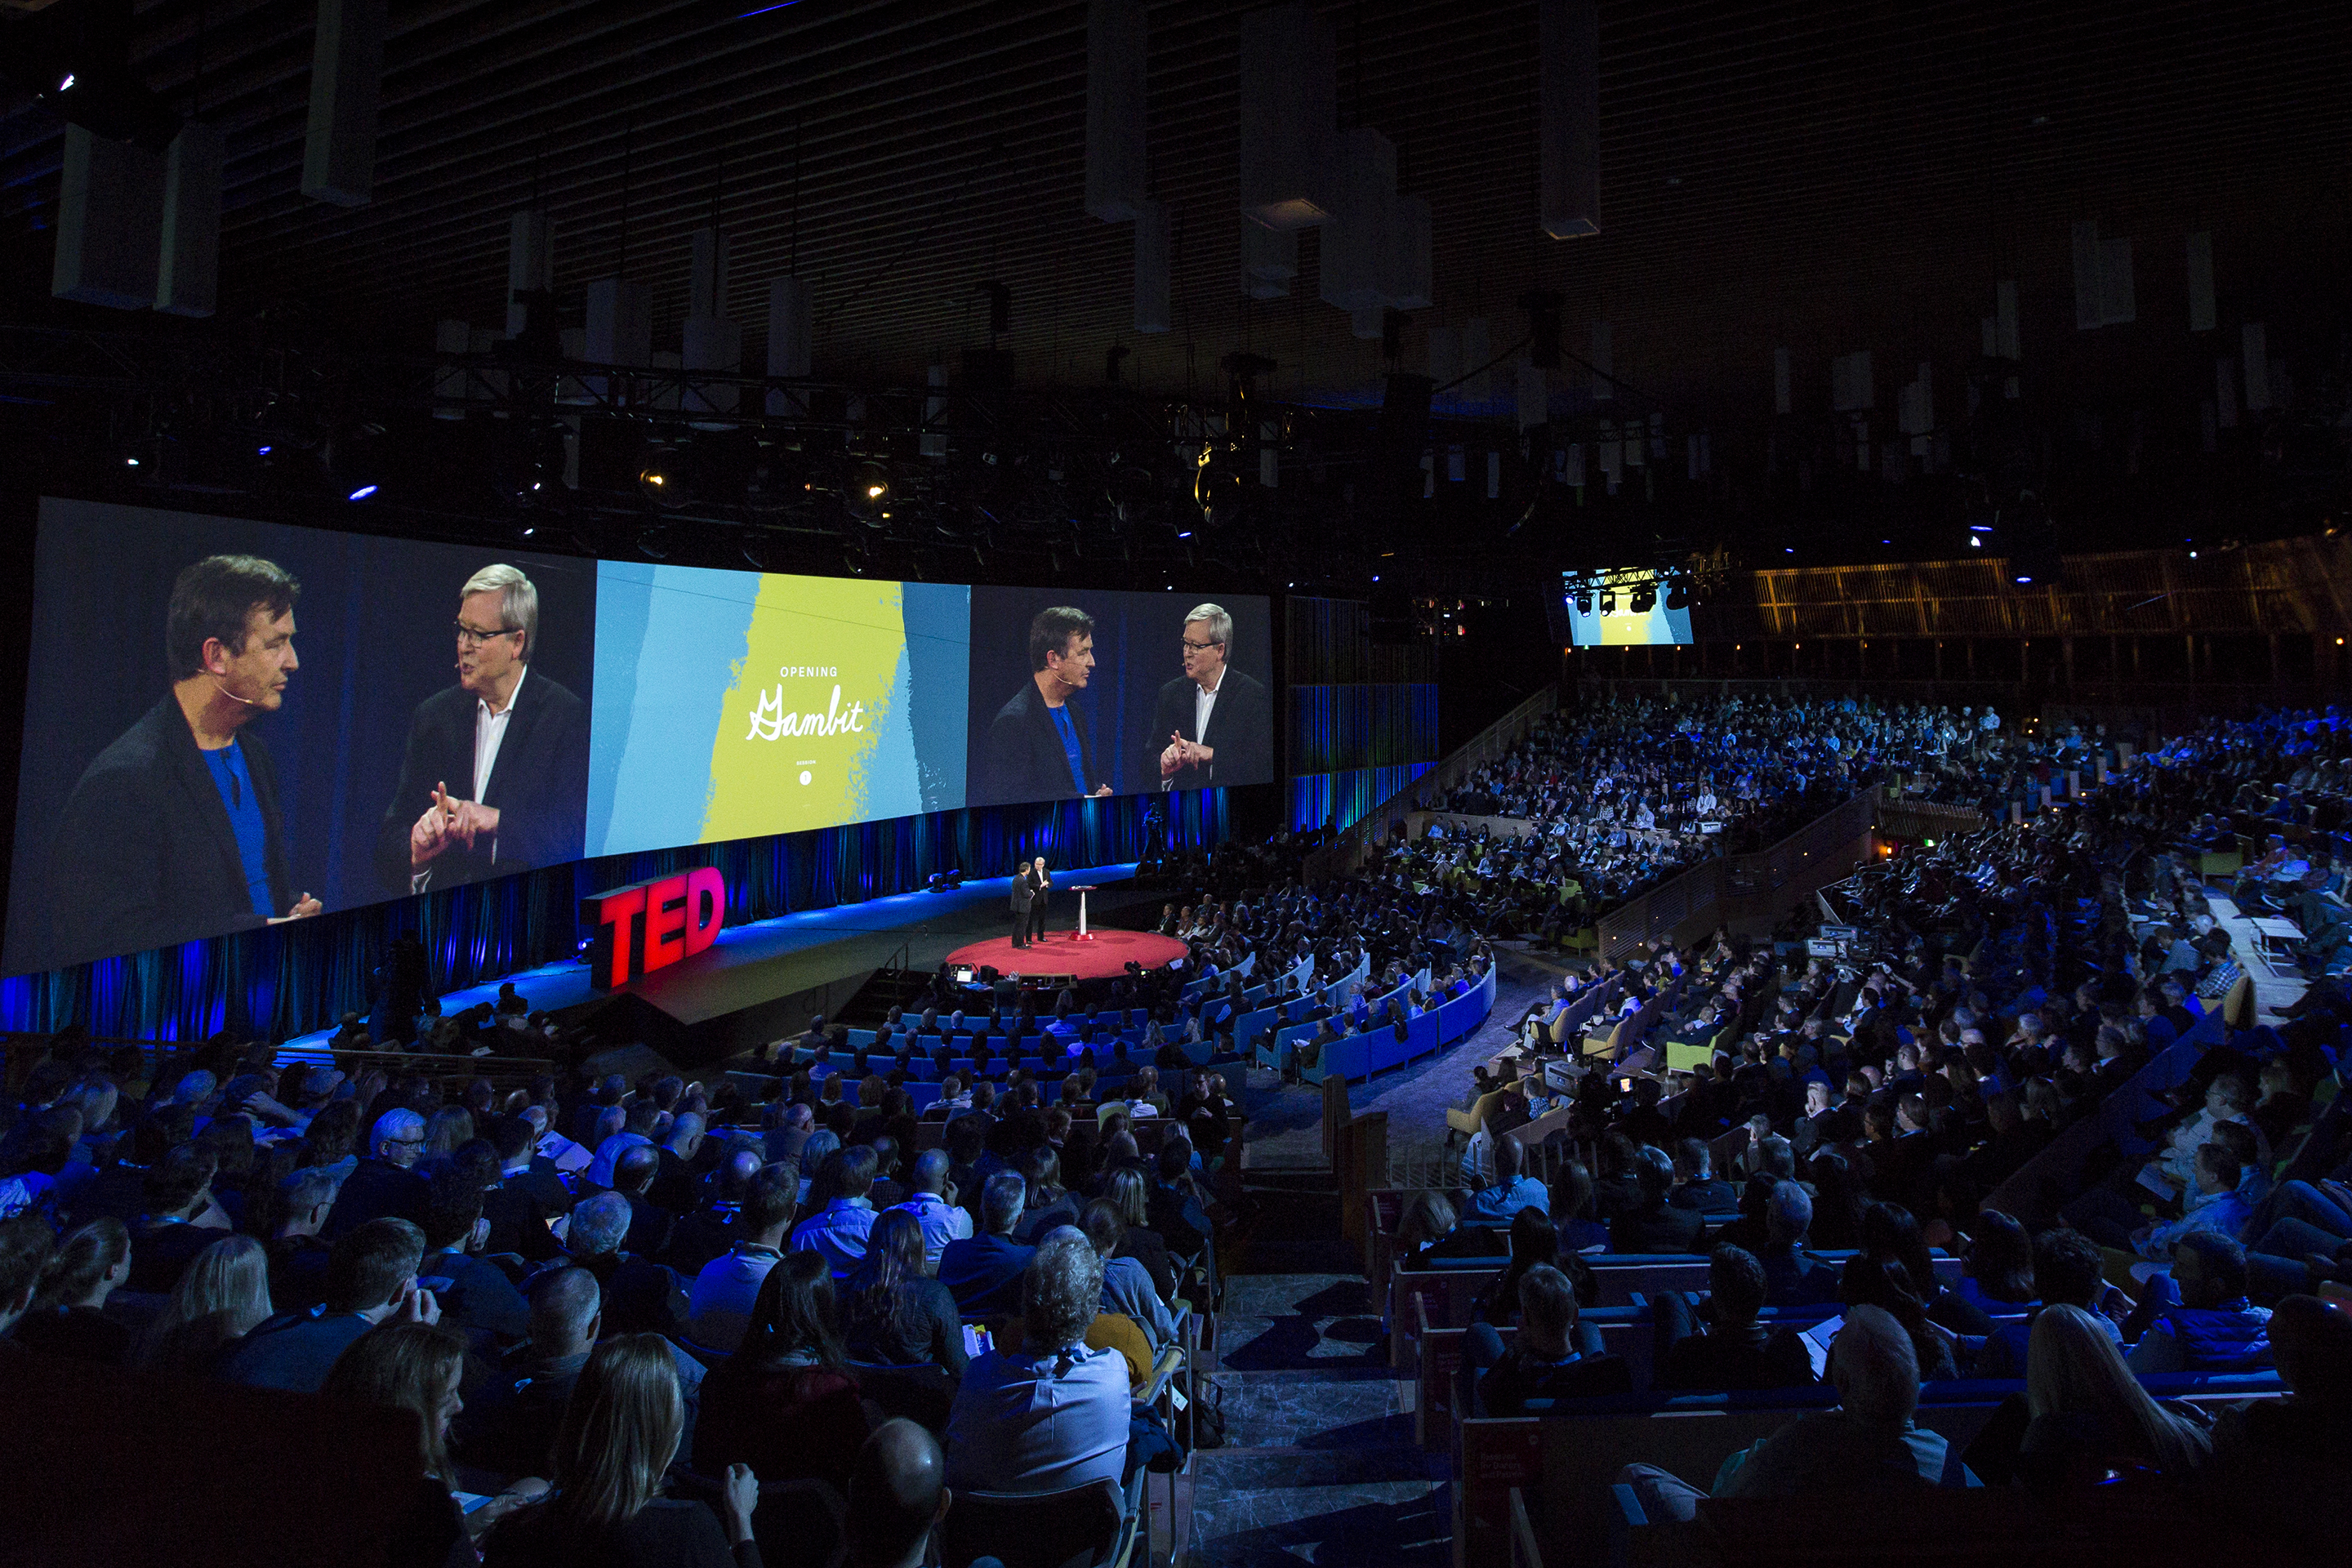 Chris Anderson speaks with Kevin Rudd at TED2015 - Truth and Dare, Session 1, March 16-20, 2015, Vancouver Convention Center, Vancouver, Canada. Photo: Ryan Lash/TED